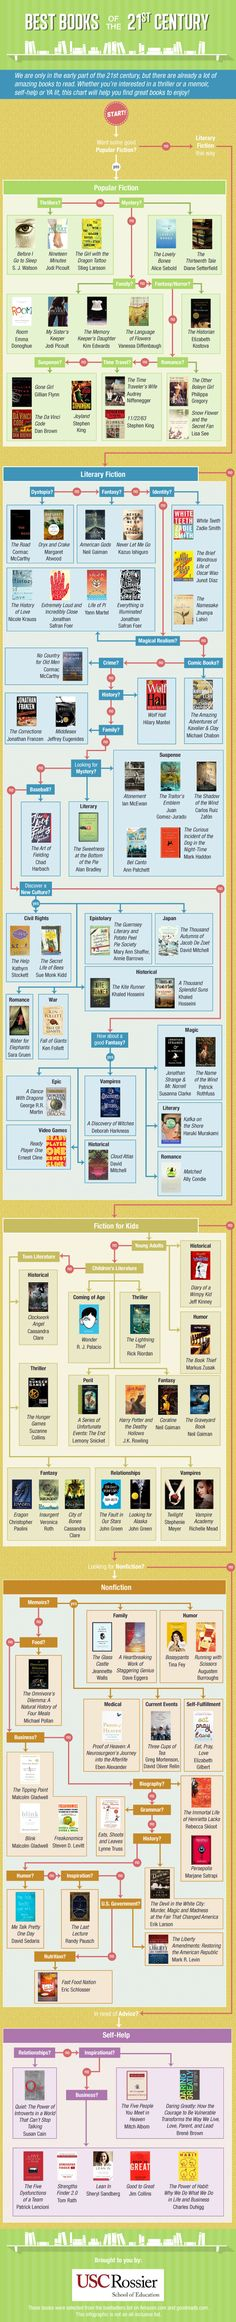 Best Books Of The 21st Century #Books #Reading | #infographics